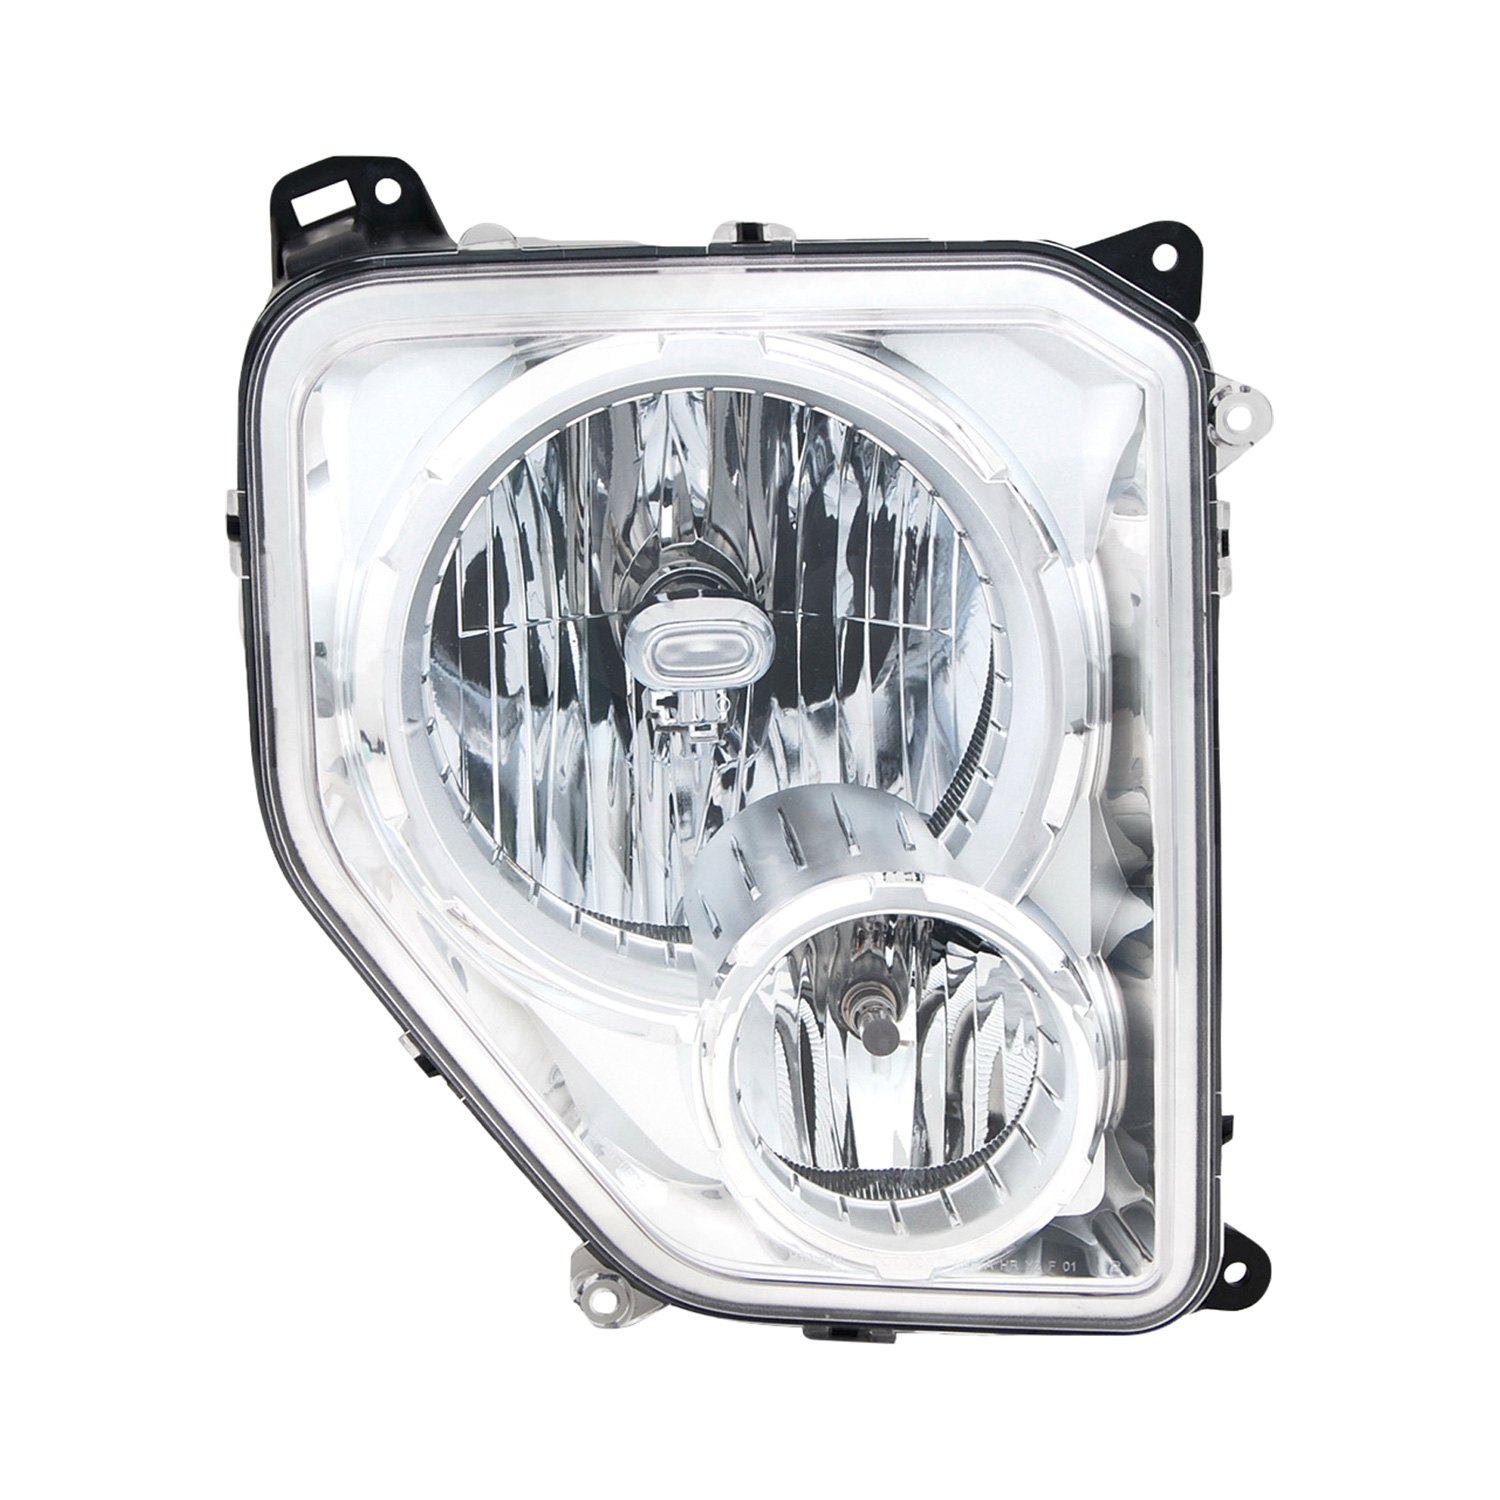 For Jeep Liberty 2008-2009 TYC 20-6973-00-1 Passenger Side